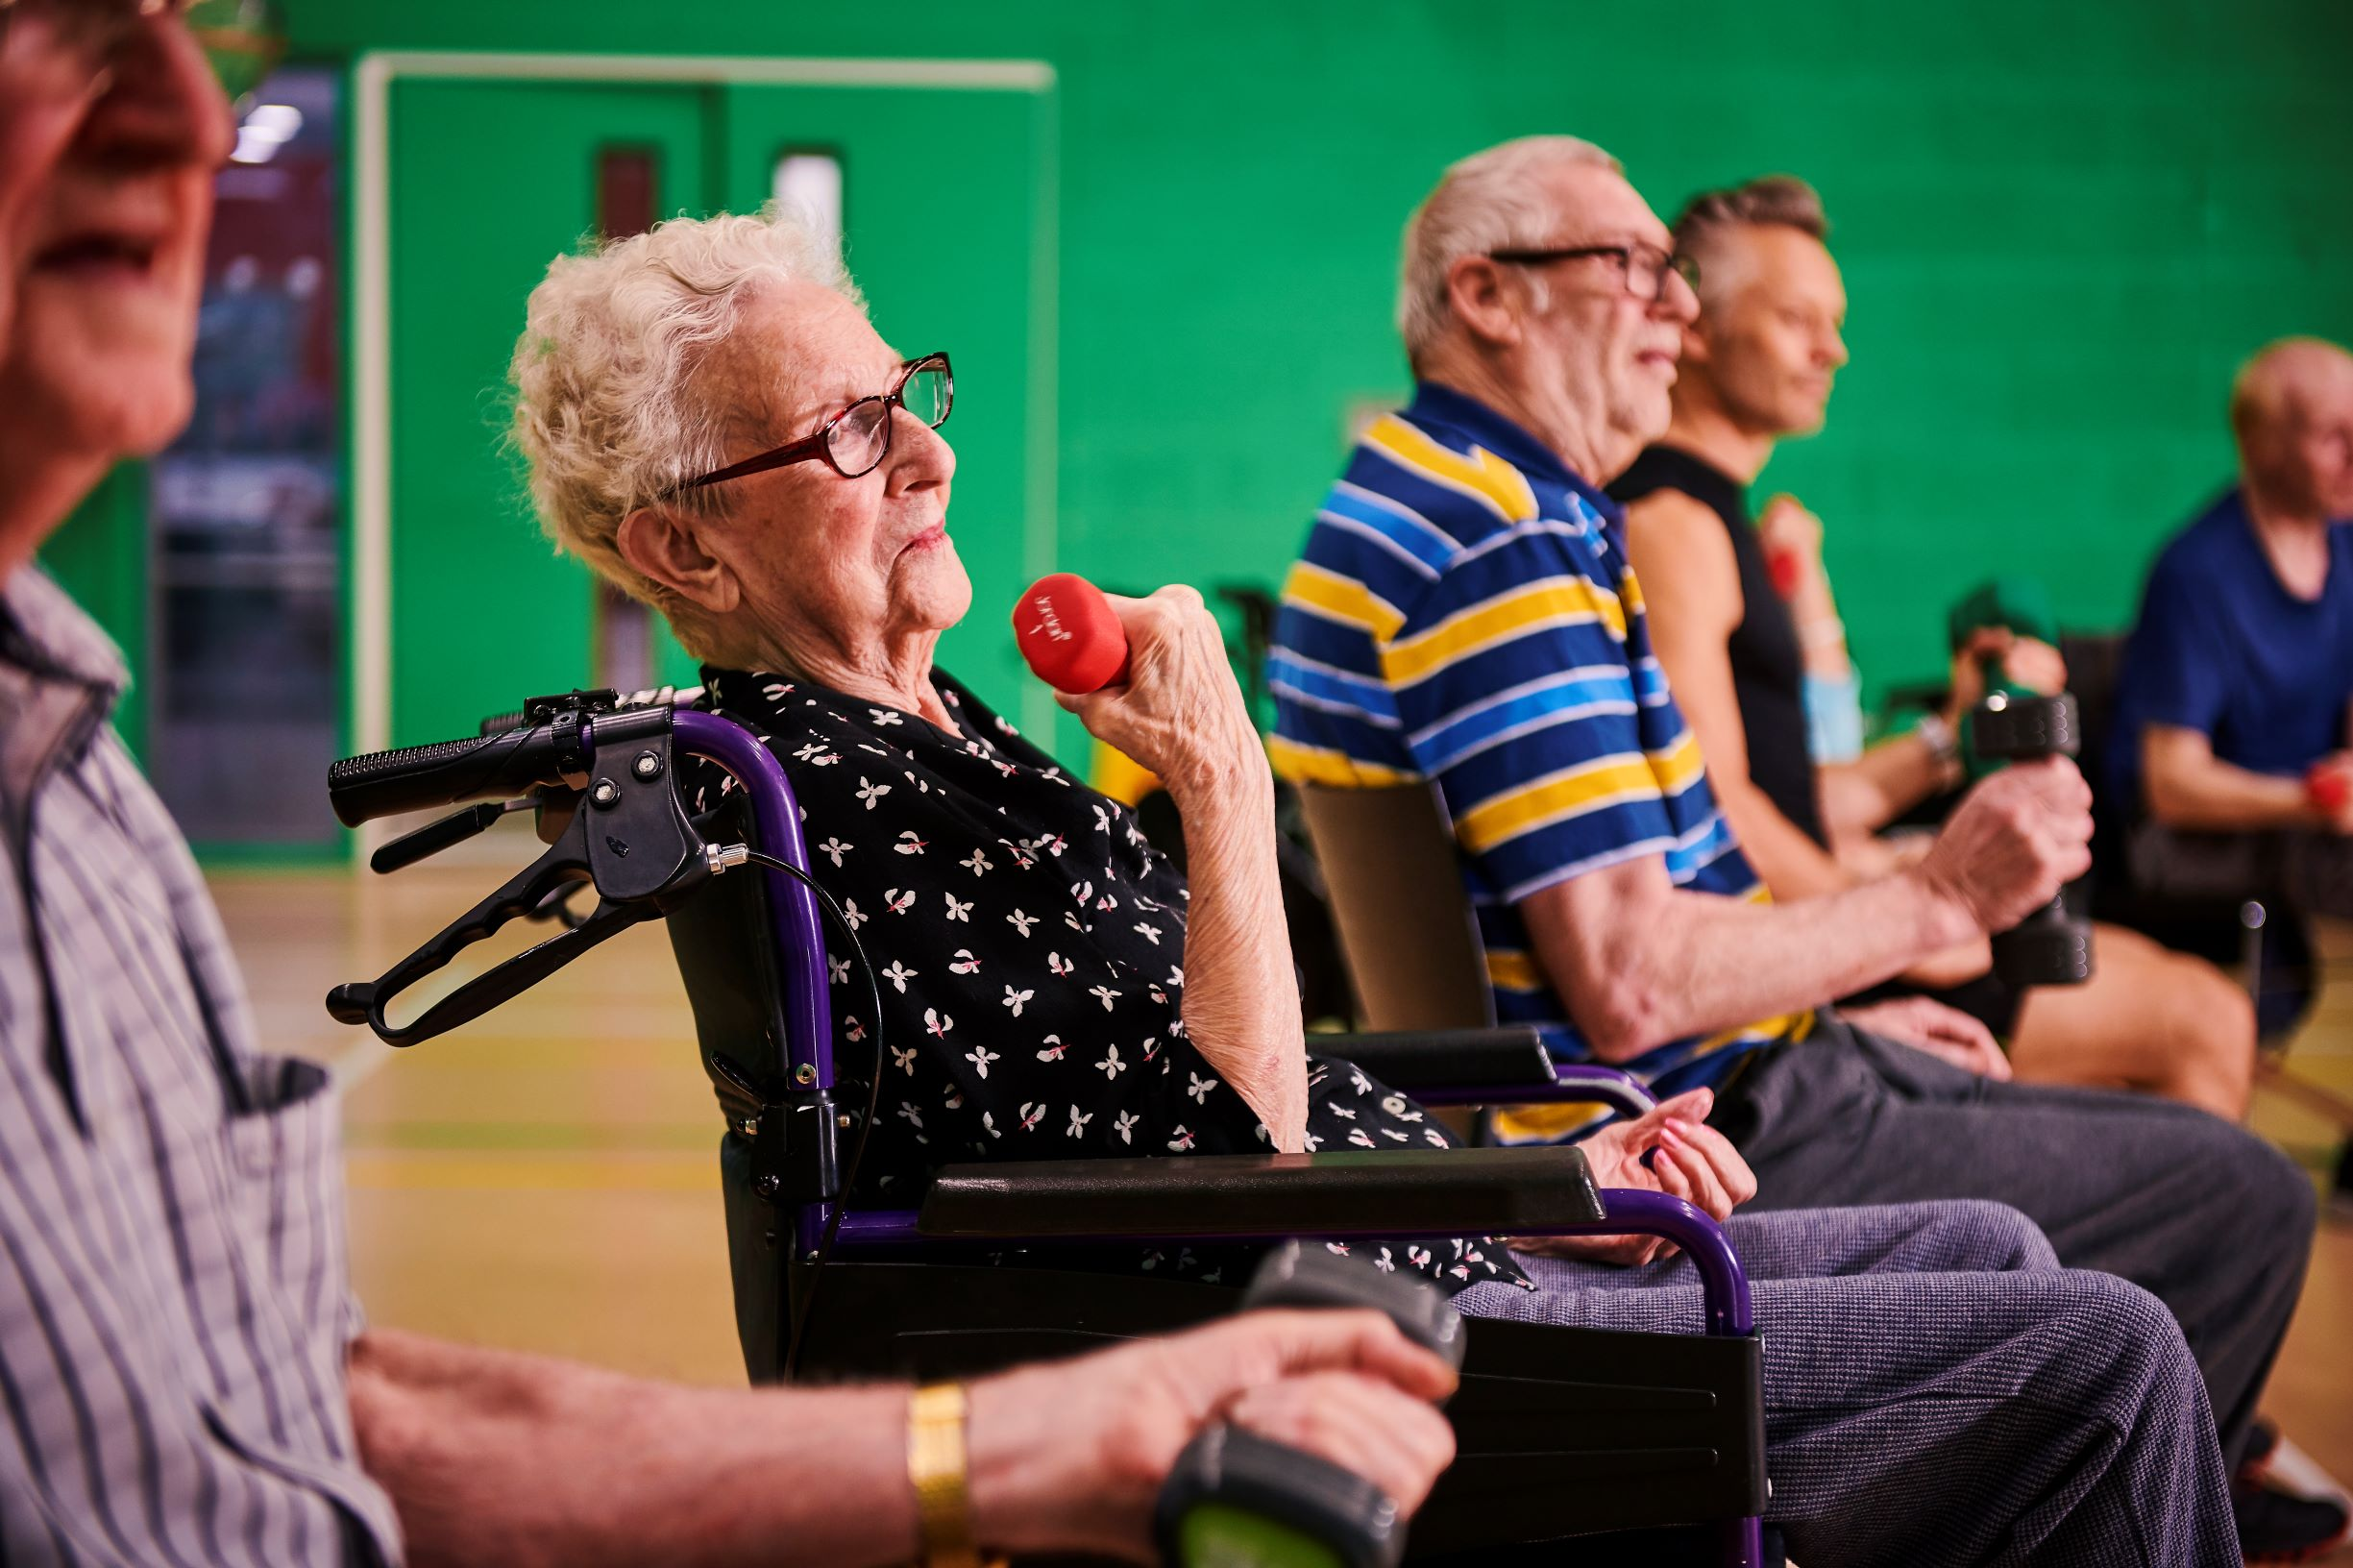 Group Exercise class for older adults